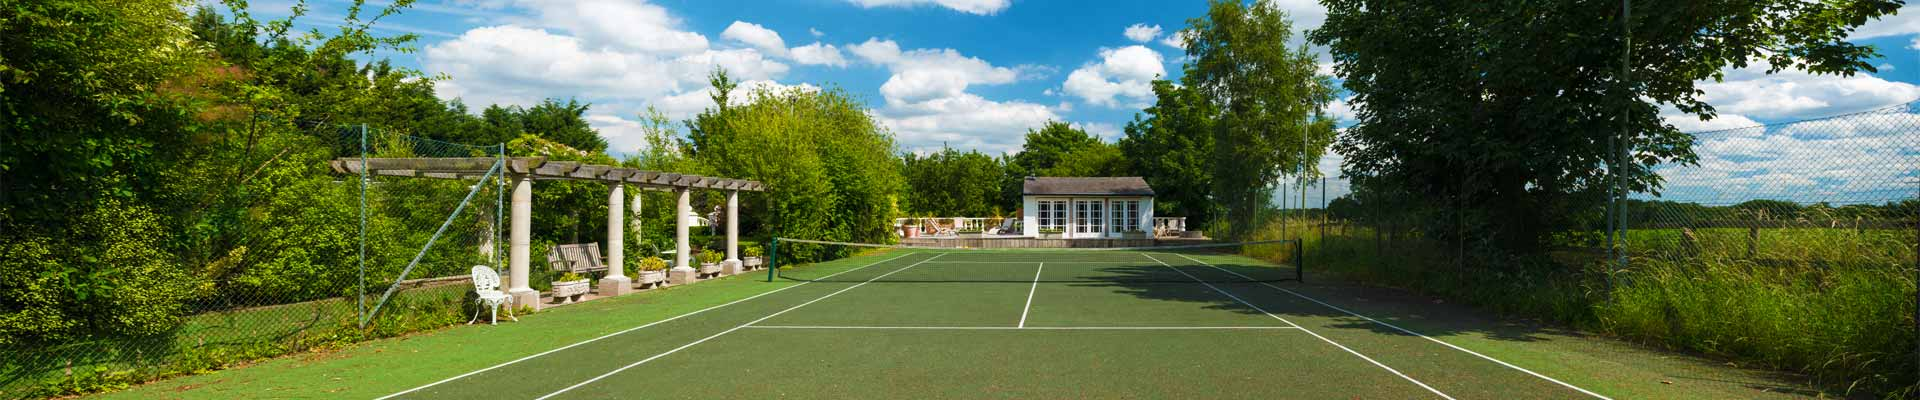 Photo of Erskine House' tennis court